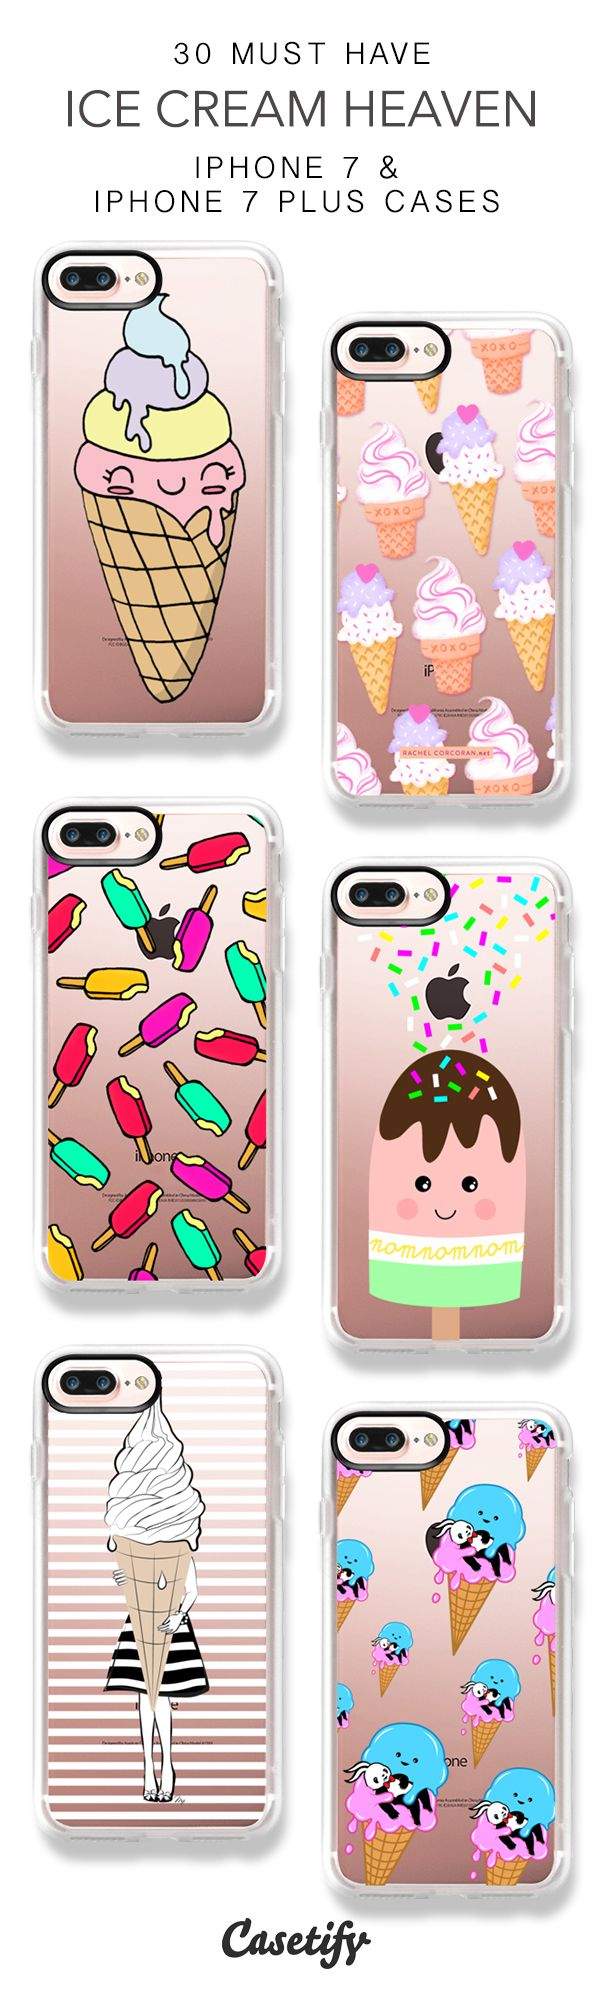 30 Must Have Ice Cream Heaven iPhone 7 Cases and iPhone 7 Plus Cases. More Food …